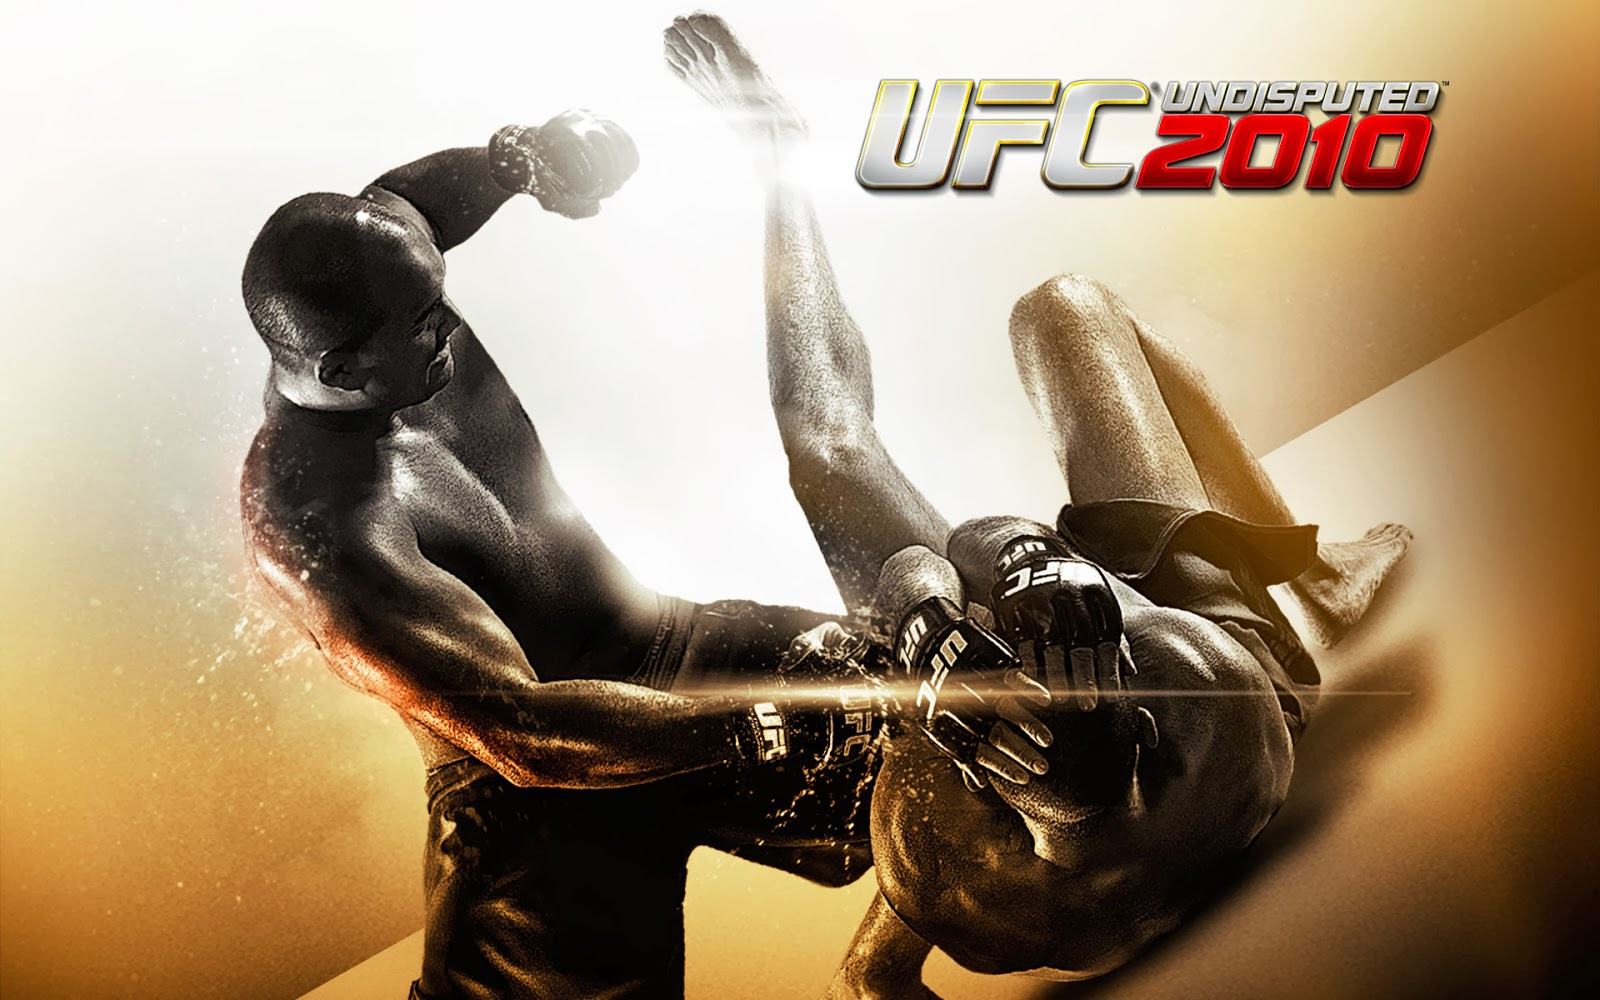 UFC HD Wallpapers Pics And Photos   HD Wallpapers Blog 1600x1000